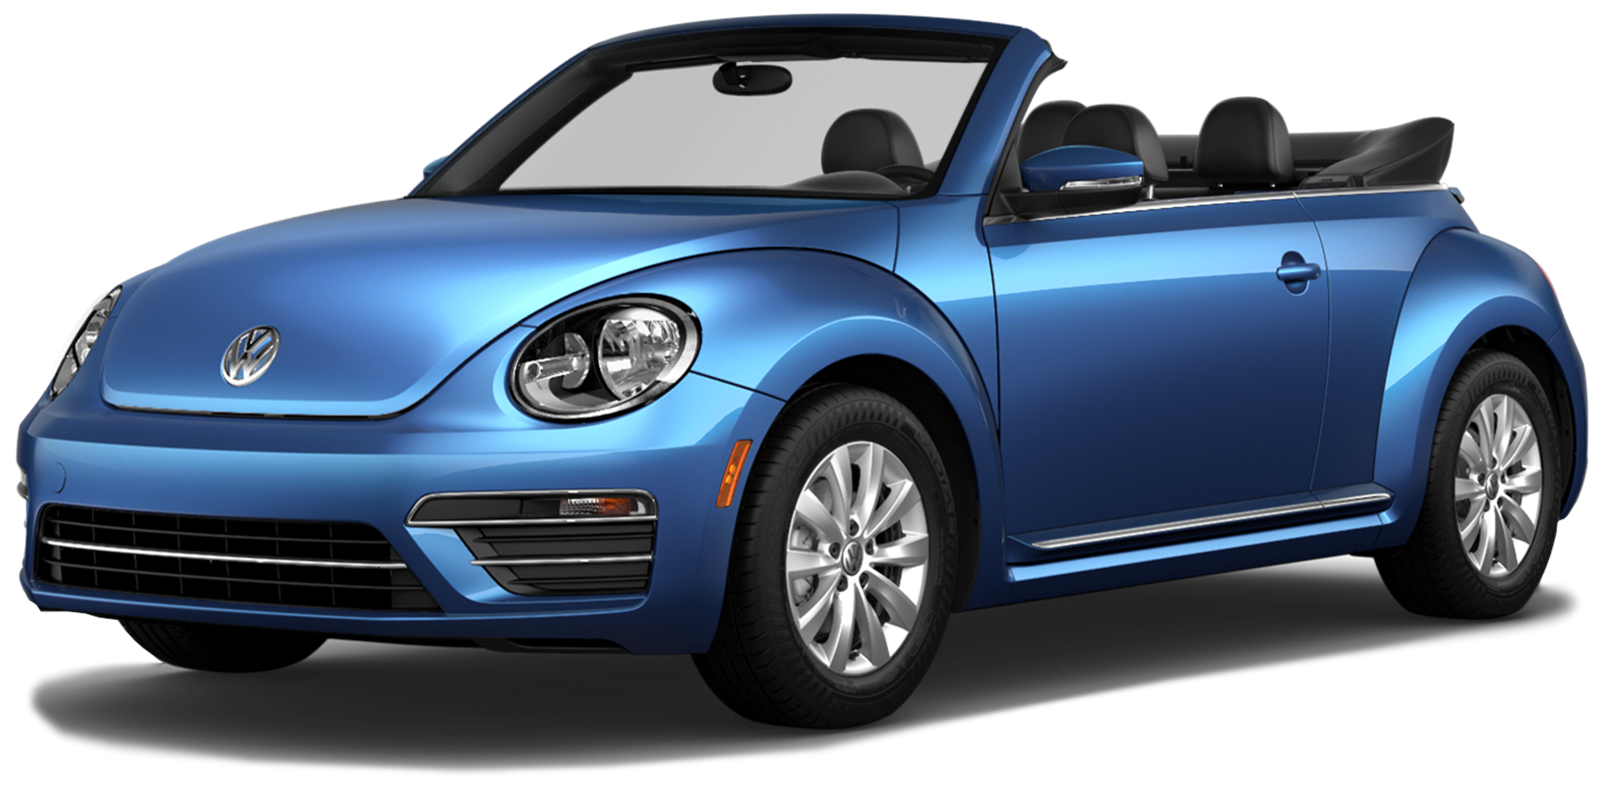 2019 Volkswagen Beetle Incentives, Specials & Offers in